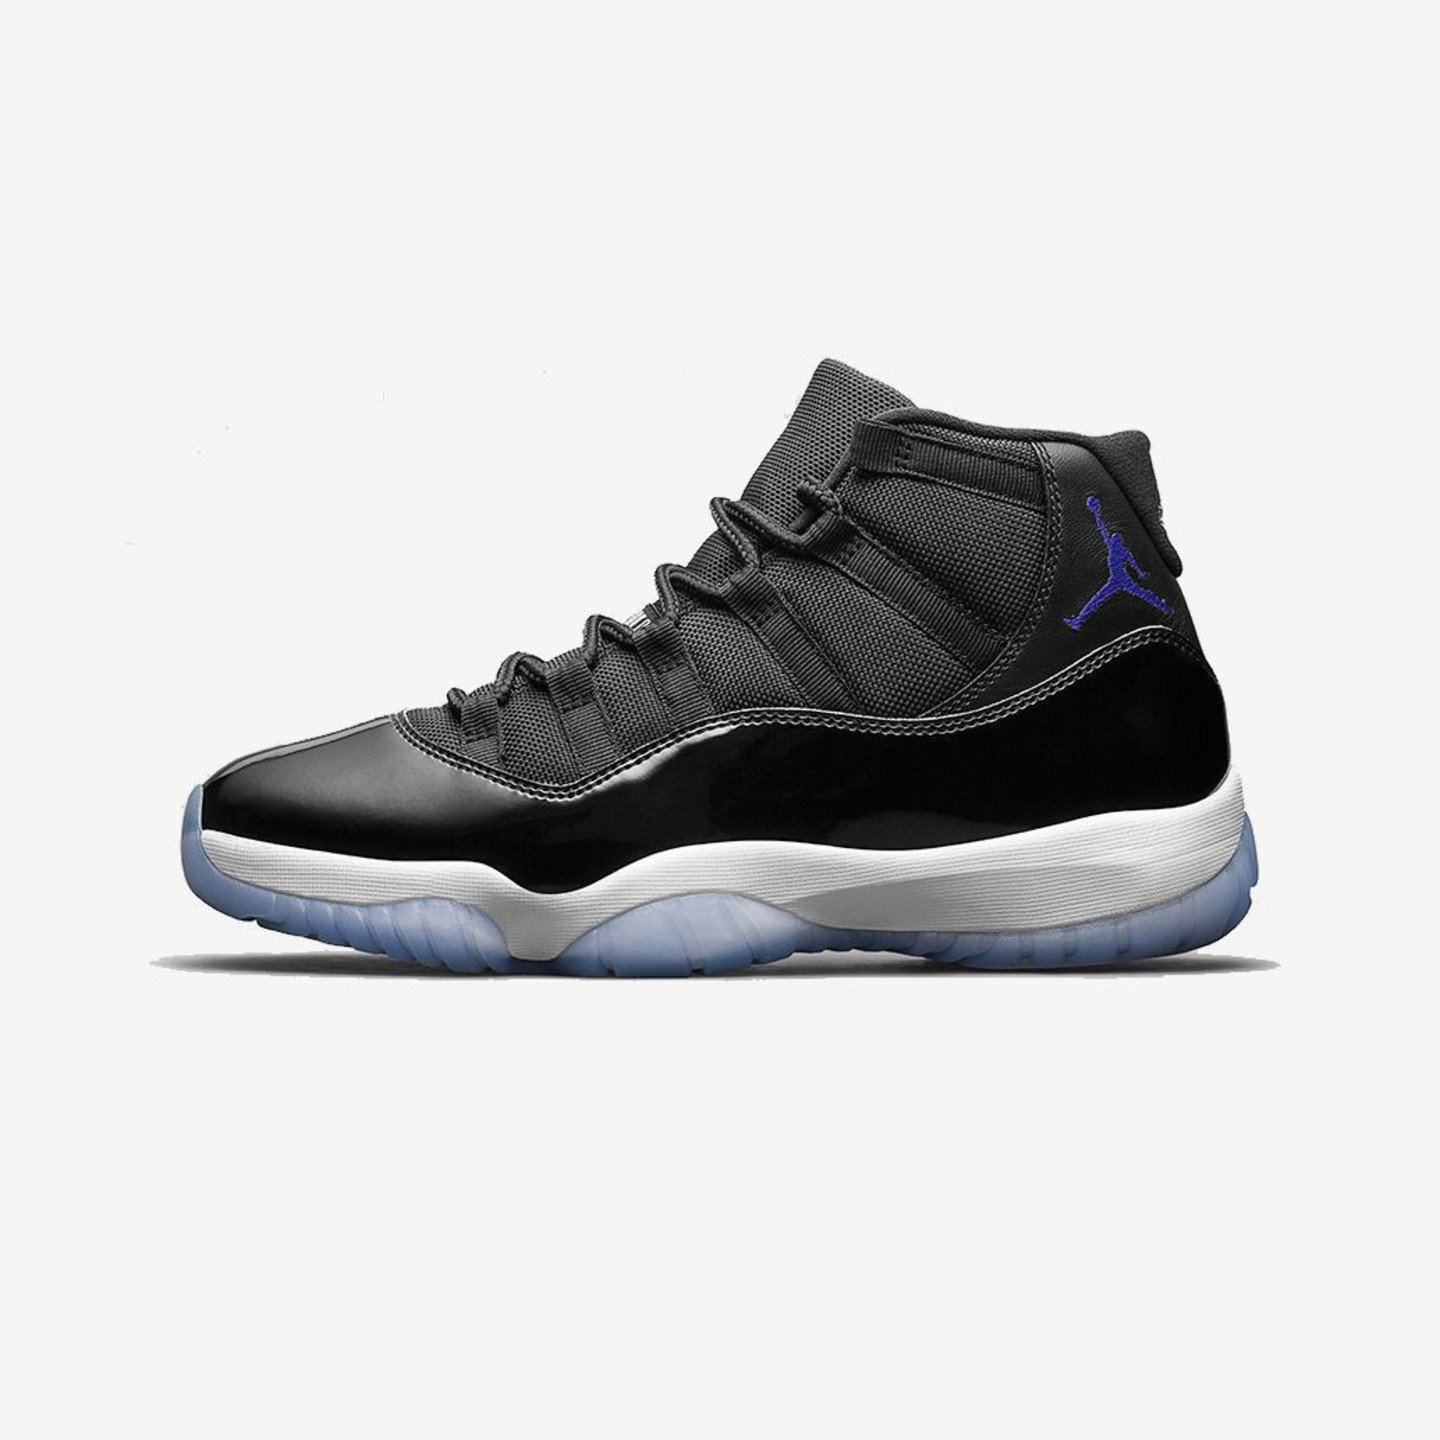 Jordan Air Jordan 11 Retro GS  'Space Jam' Black / Concord / White 378038-003-40